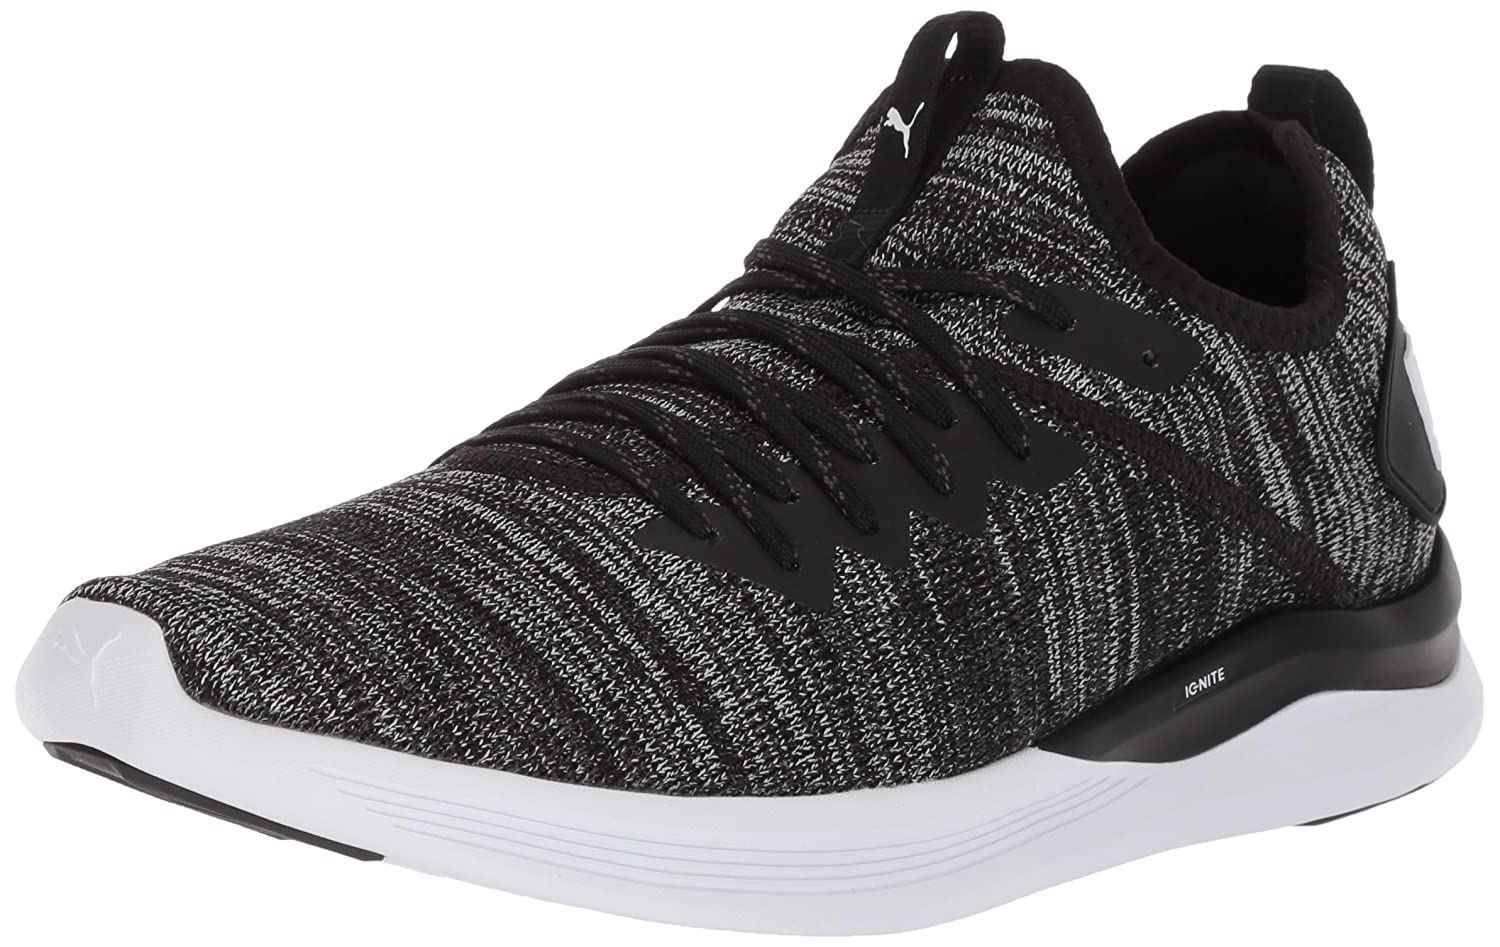 PUMA Men's Ignite Flash Evoknit Sneaker  Black Asphalt White  8 M US